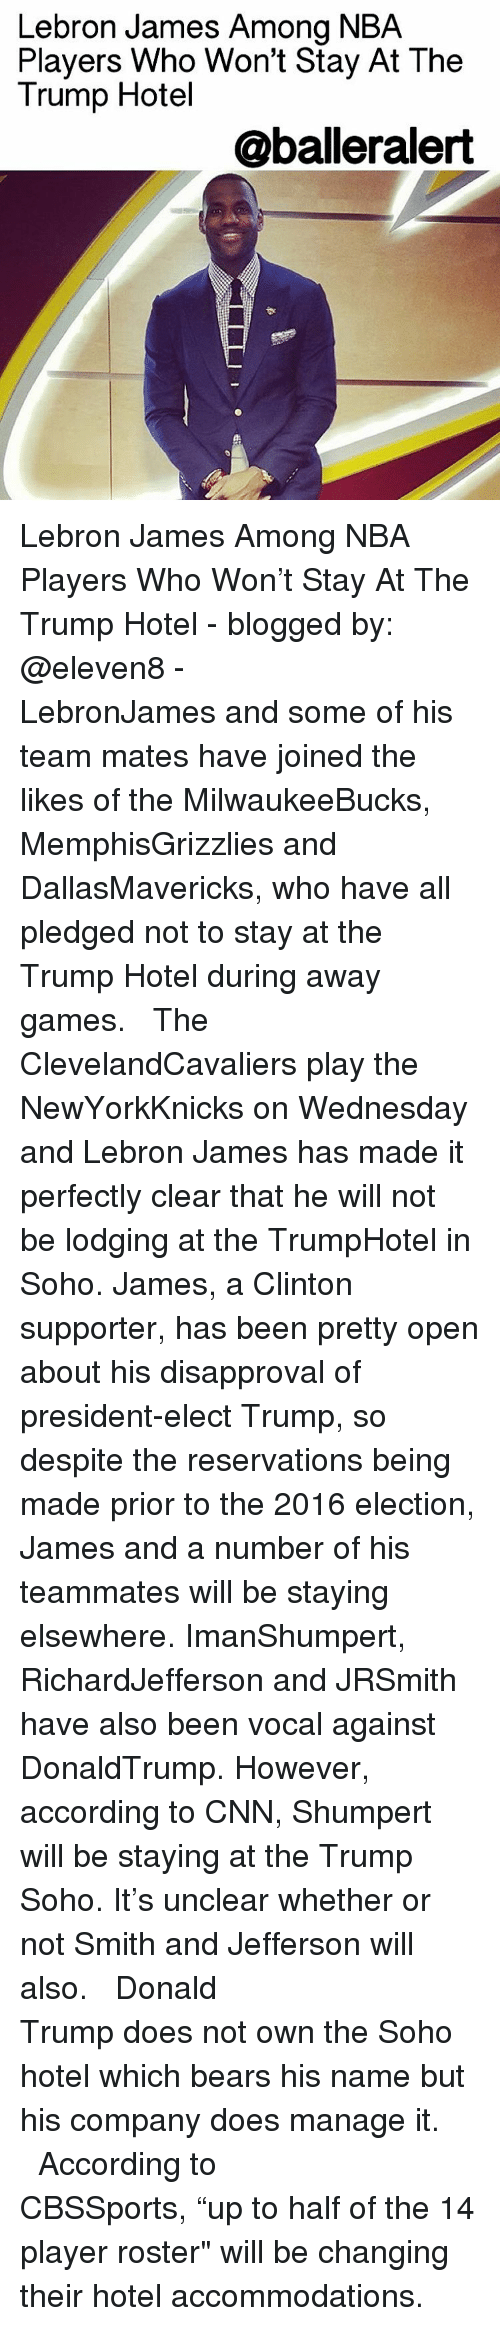 """Disapproval: Lebron James Among NBA  Players Who Won't Stay At The  Trump Hotel  @balleralert Lebron James Among NBA Players Who Won't Stay At The Trump Hotel - blogged by: @eleven8 - ⠀⠀⠀⠀⠀⠀⠀⠀⠀ ⠀⠀⠀⠀⠀⠀⠀⠀⠀ LebronJames and some of his team mates have joined the likes of the MilwaukeeBucks, MemphisGrizzlies and DallasMavericks, who have all pledged not to stay at the Trump Hotel during away games. ⠀⠀⠀⠀⠀⠀⠀⠀⠀ ⠀⠀⠀⠀⠀⠀⠀⠀⠀ The ClevelandCavaliers play the NewYorkKnicks on Wednesday and Lebron James has made it perfectly clear that he will not be lodging at the TrumpHotel in Soho. James, a Clinton supporter, has been pretty open about his disapproval of president-elect Trump, so despite the reservations being made prior to the 2016 election, James and a number of his teammates will be staying elsewhere. ImanShumpert, RichardJefferson and JRSmith have also been vocal against DonaldTrump. However, according to CNN, Shumpert will be staying at the Trump Soho. It's unclear whether or not Smith and Jefferson will also. ⠀⠀⠀⠀⠀⠀⠀⠀⠀ ⠀⠀⠀⠀⠀⠀⠀⠀⠀ Donald Trump does not own the Soho hotel which bears his name but his company does manage it. ⠀⠀⠀⠀⠀⠀⠀⠀⠀ ⠀⠀⠀⠀⠀⠀⠀⠀⠀ According to CBSSports, """"up to half of the 14 player roster"""" will be changing their hotel accommodations."""